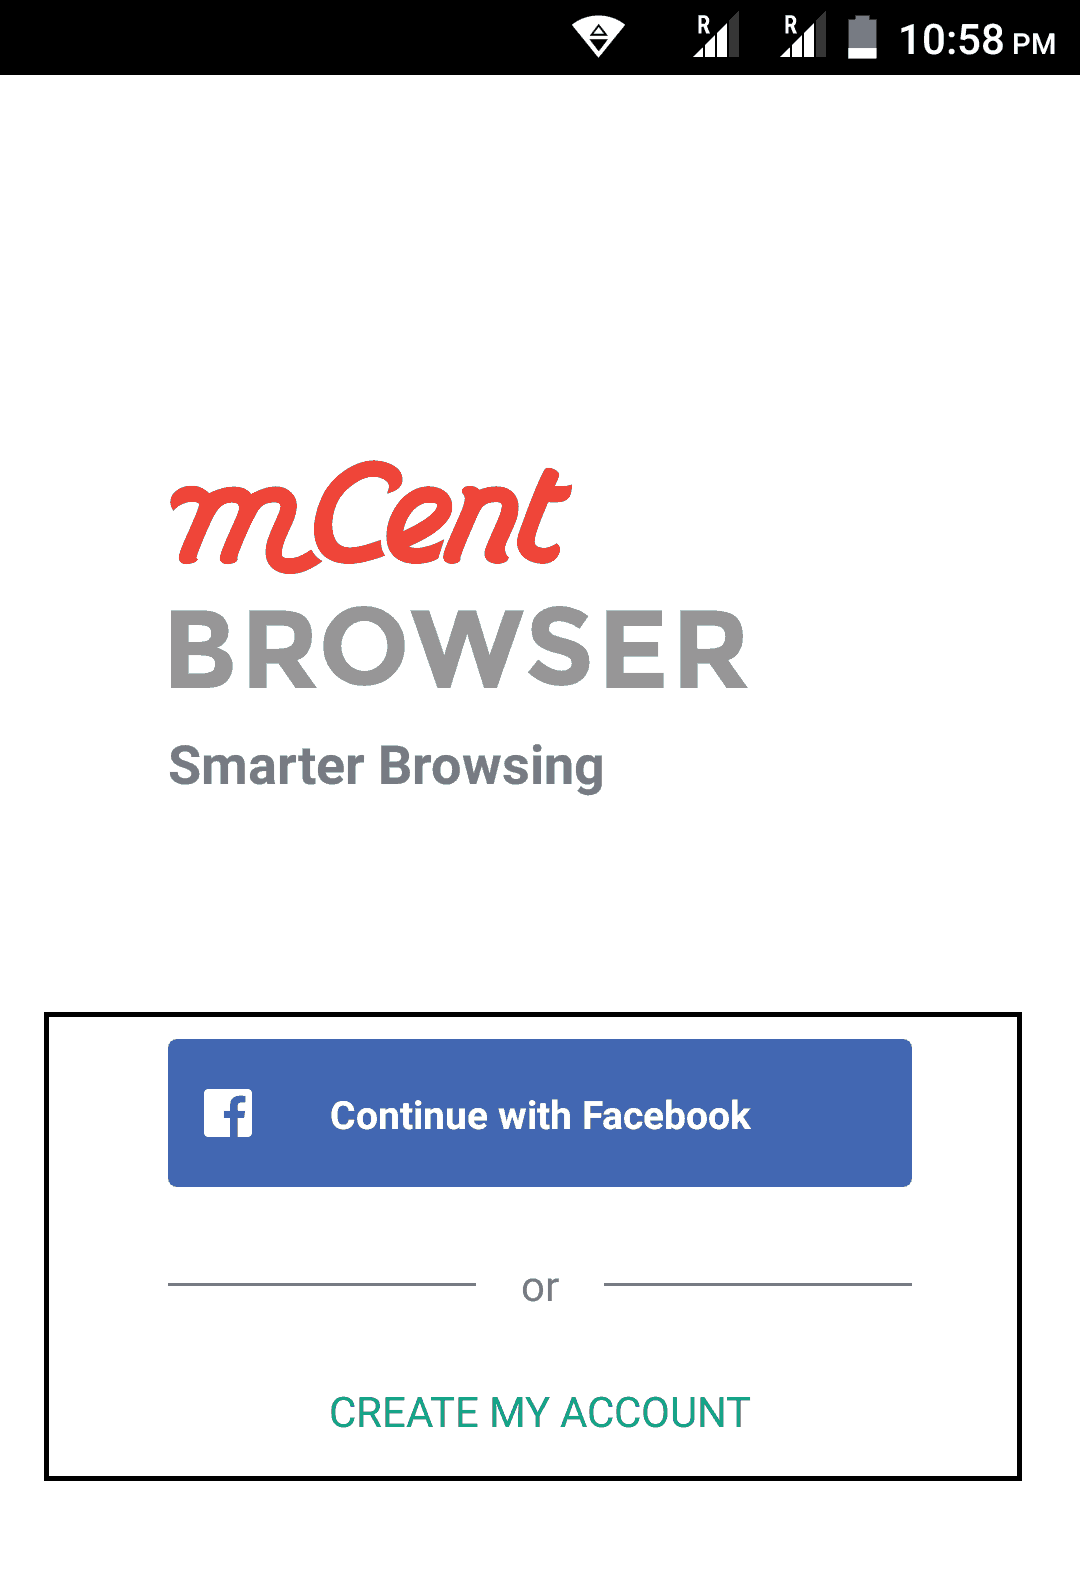 mcent browser login